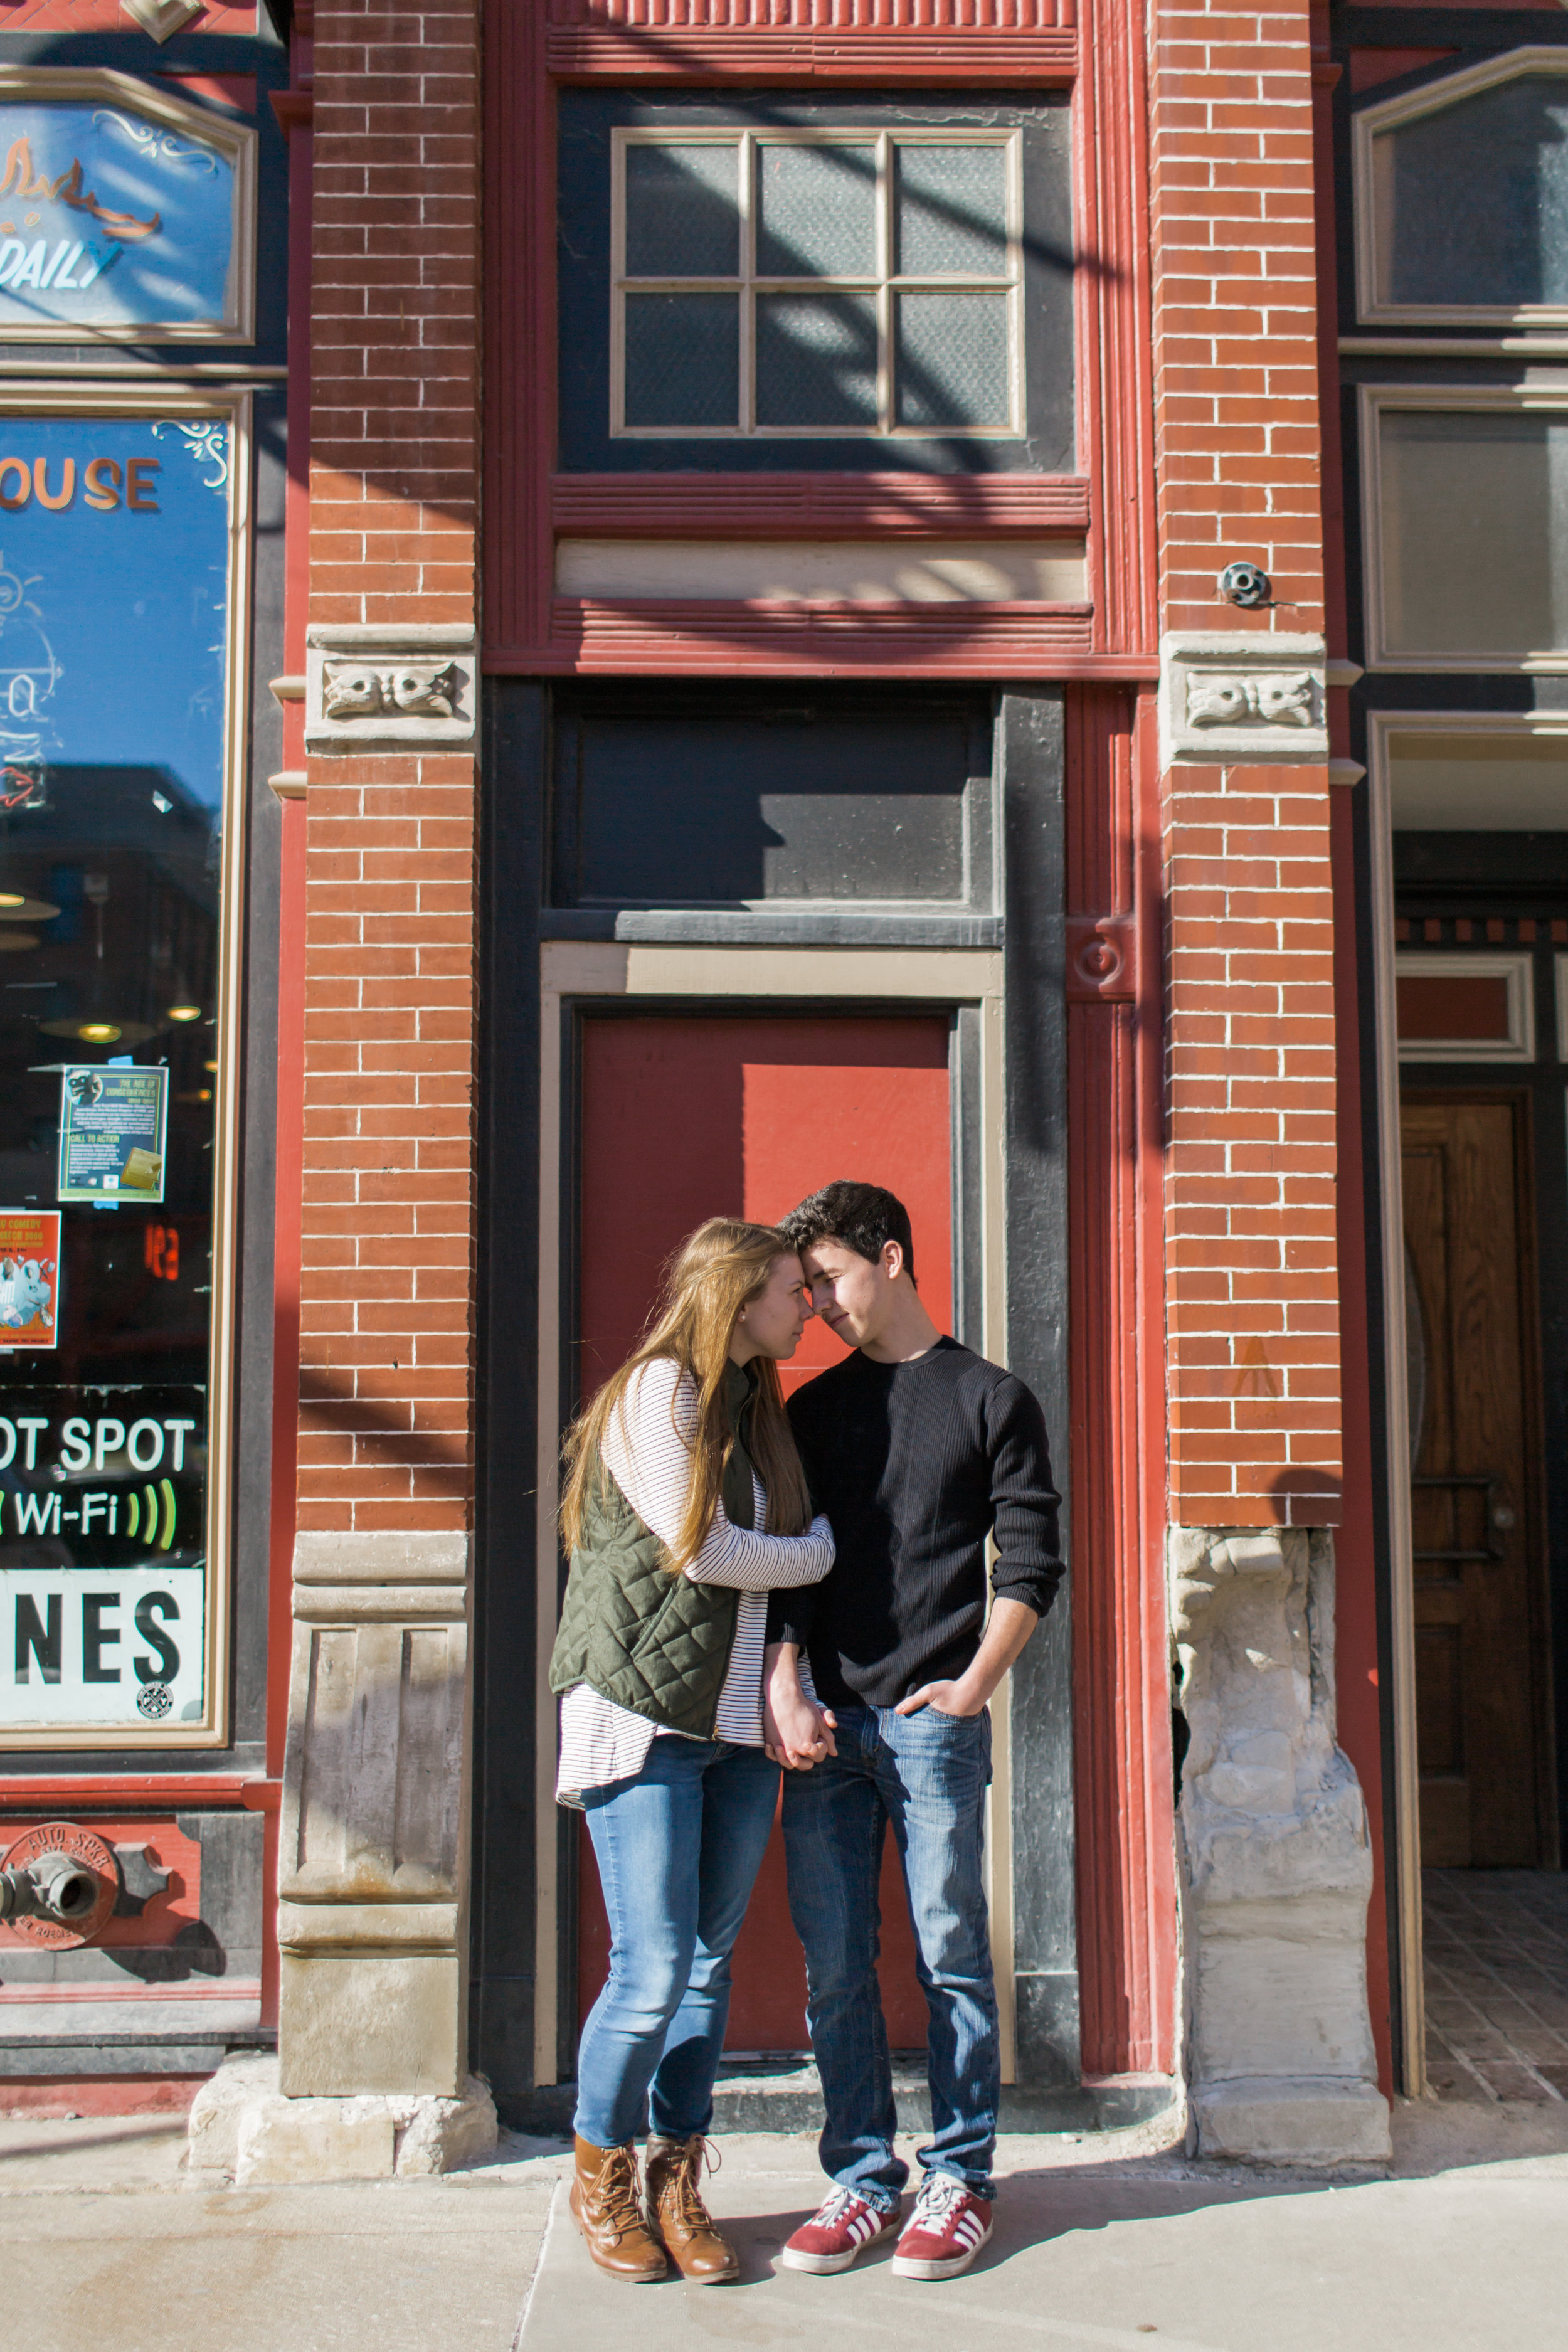 Des-Moines-coffee-shop-engagement-session-10.jpg